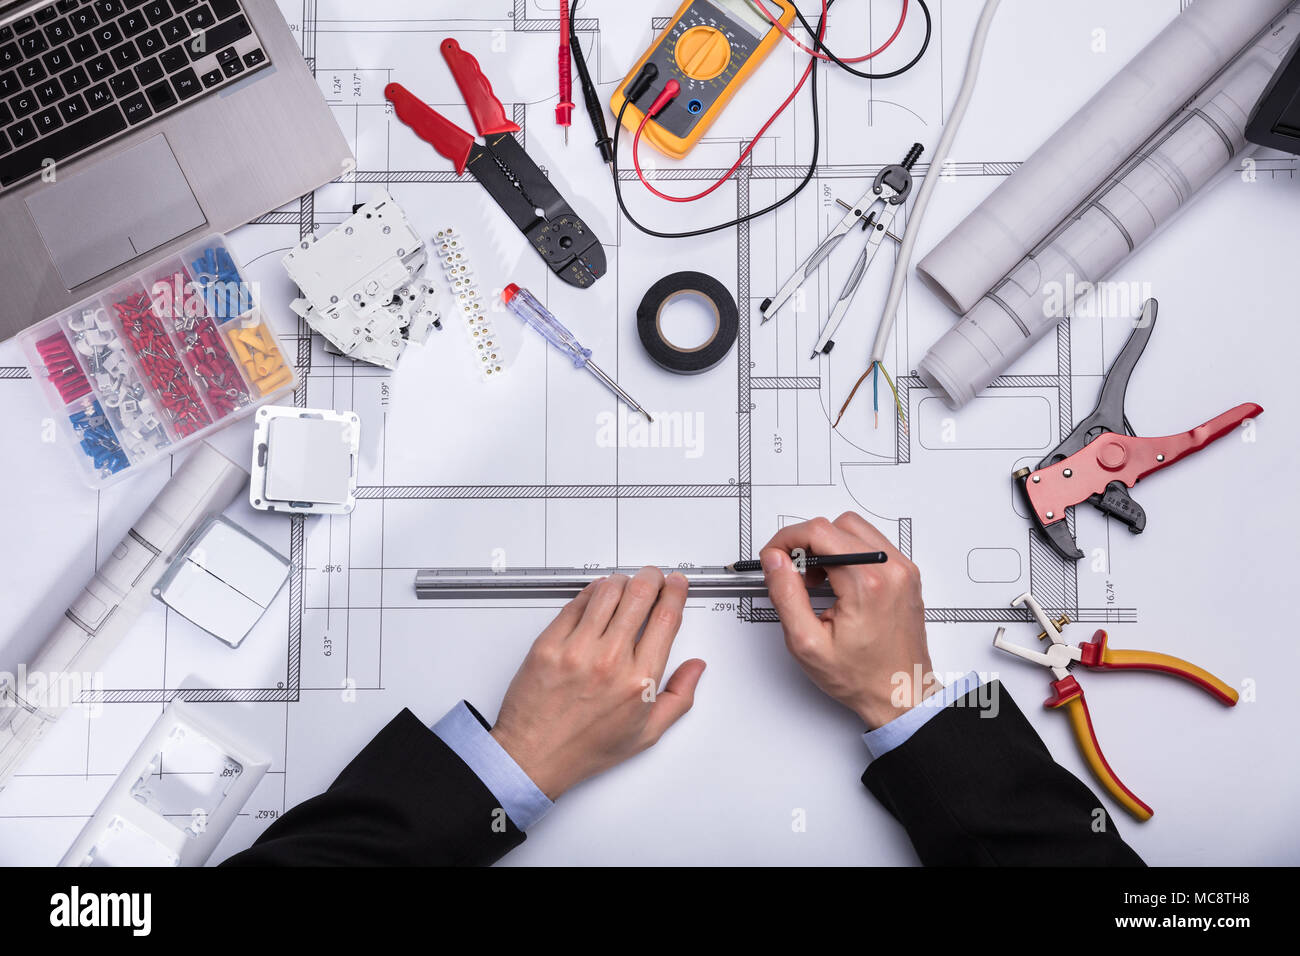 High Angle View Of A Architect's Hand Drawing Blueprint With Pencil - Stock Image